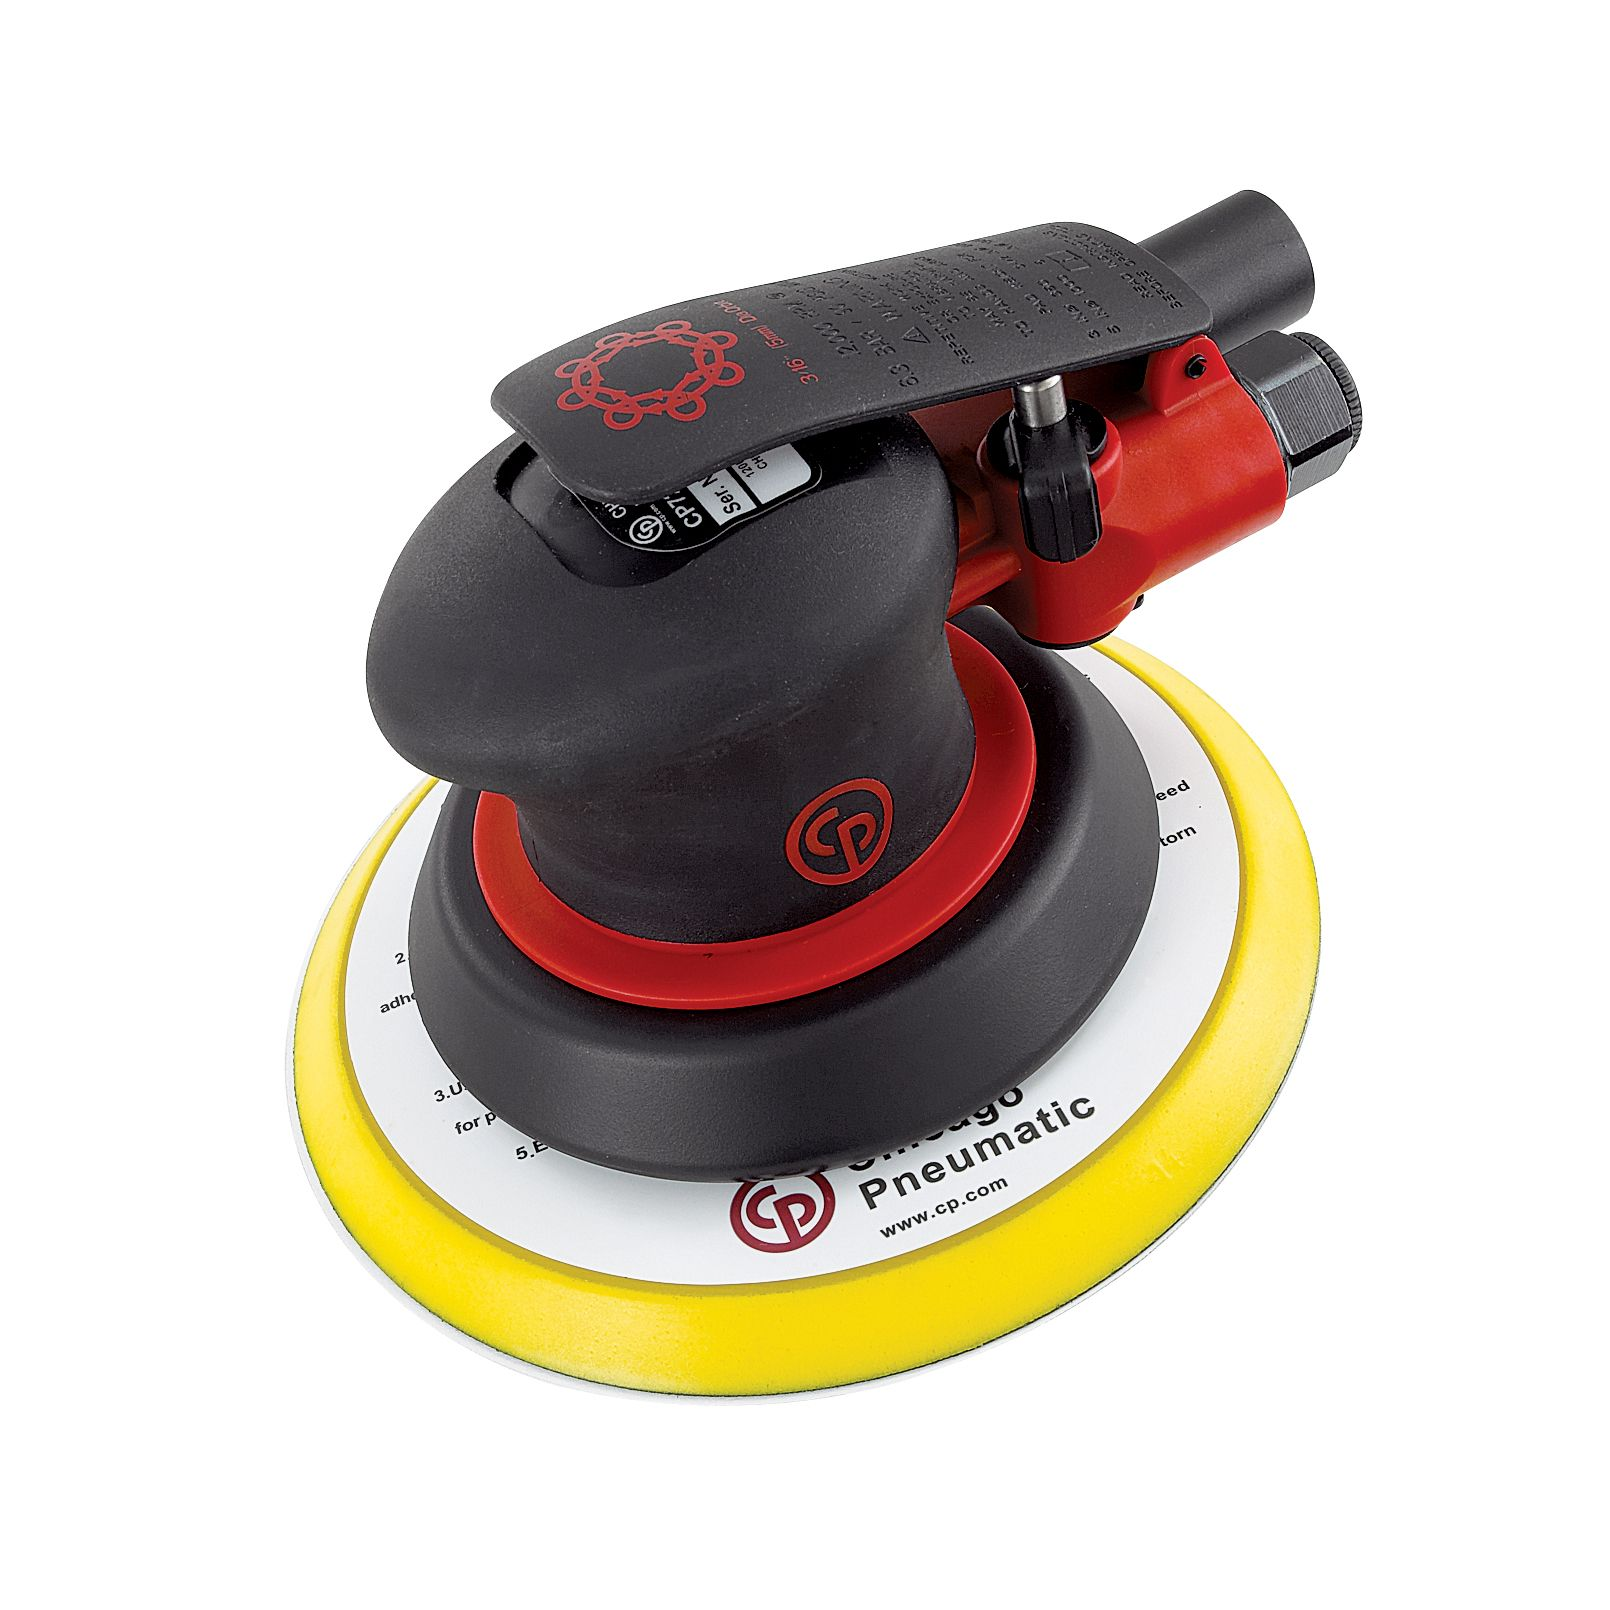 CLOSEOUT! 6 in. Random Orbit Sander - 3/8 in.